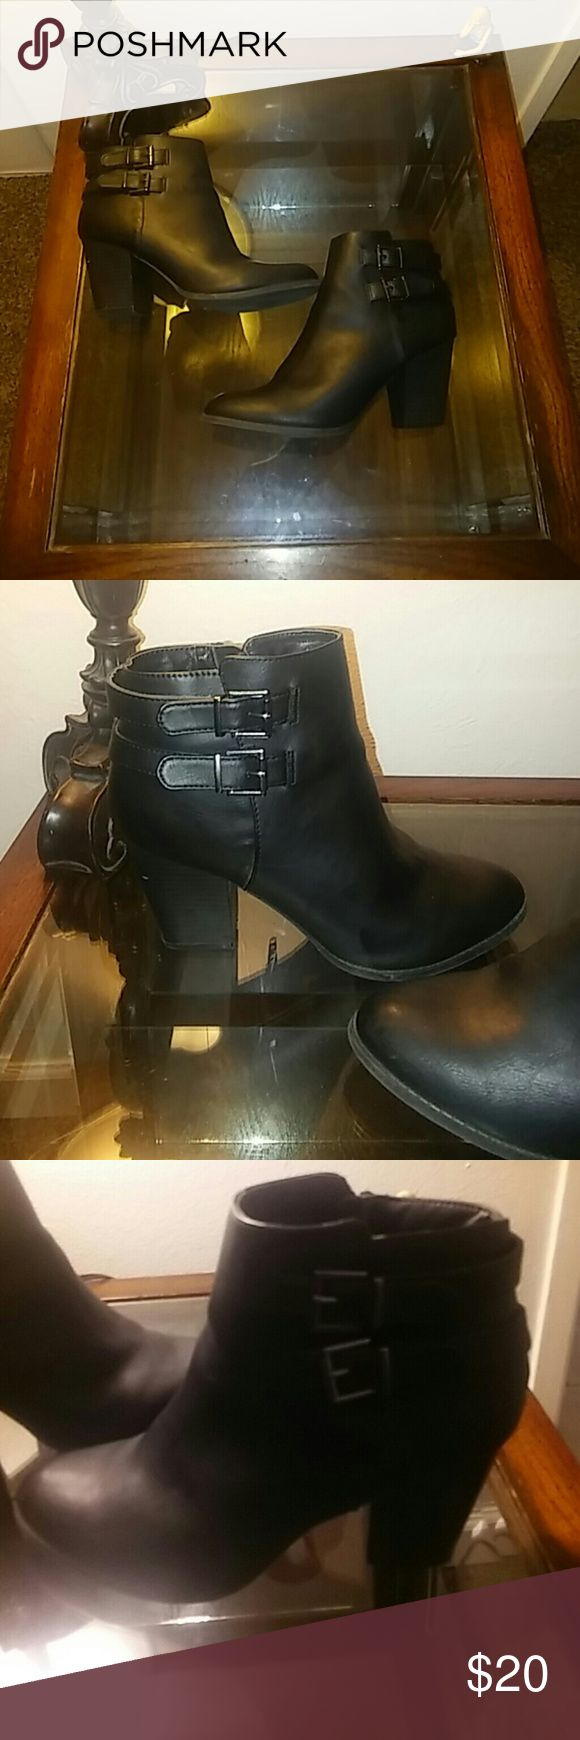 Charlotte Russe boots Boots Charlotte Russe Shoes Ankle Boots & Booties